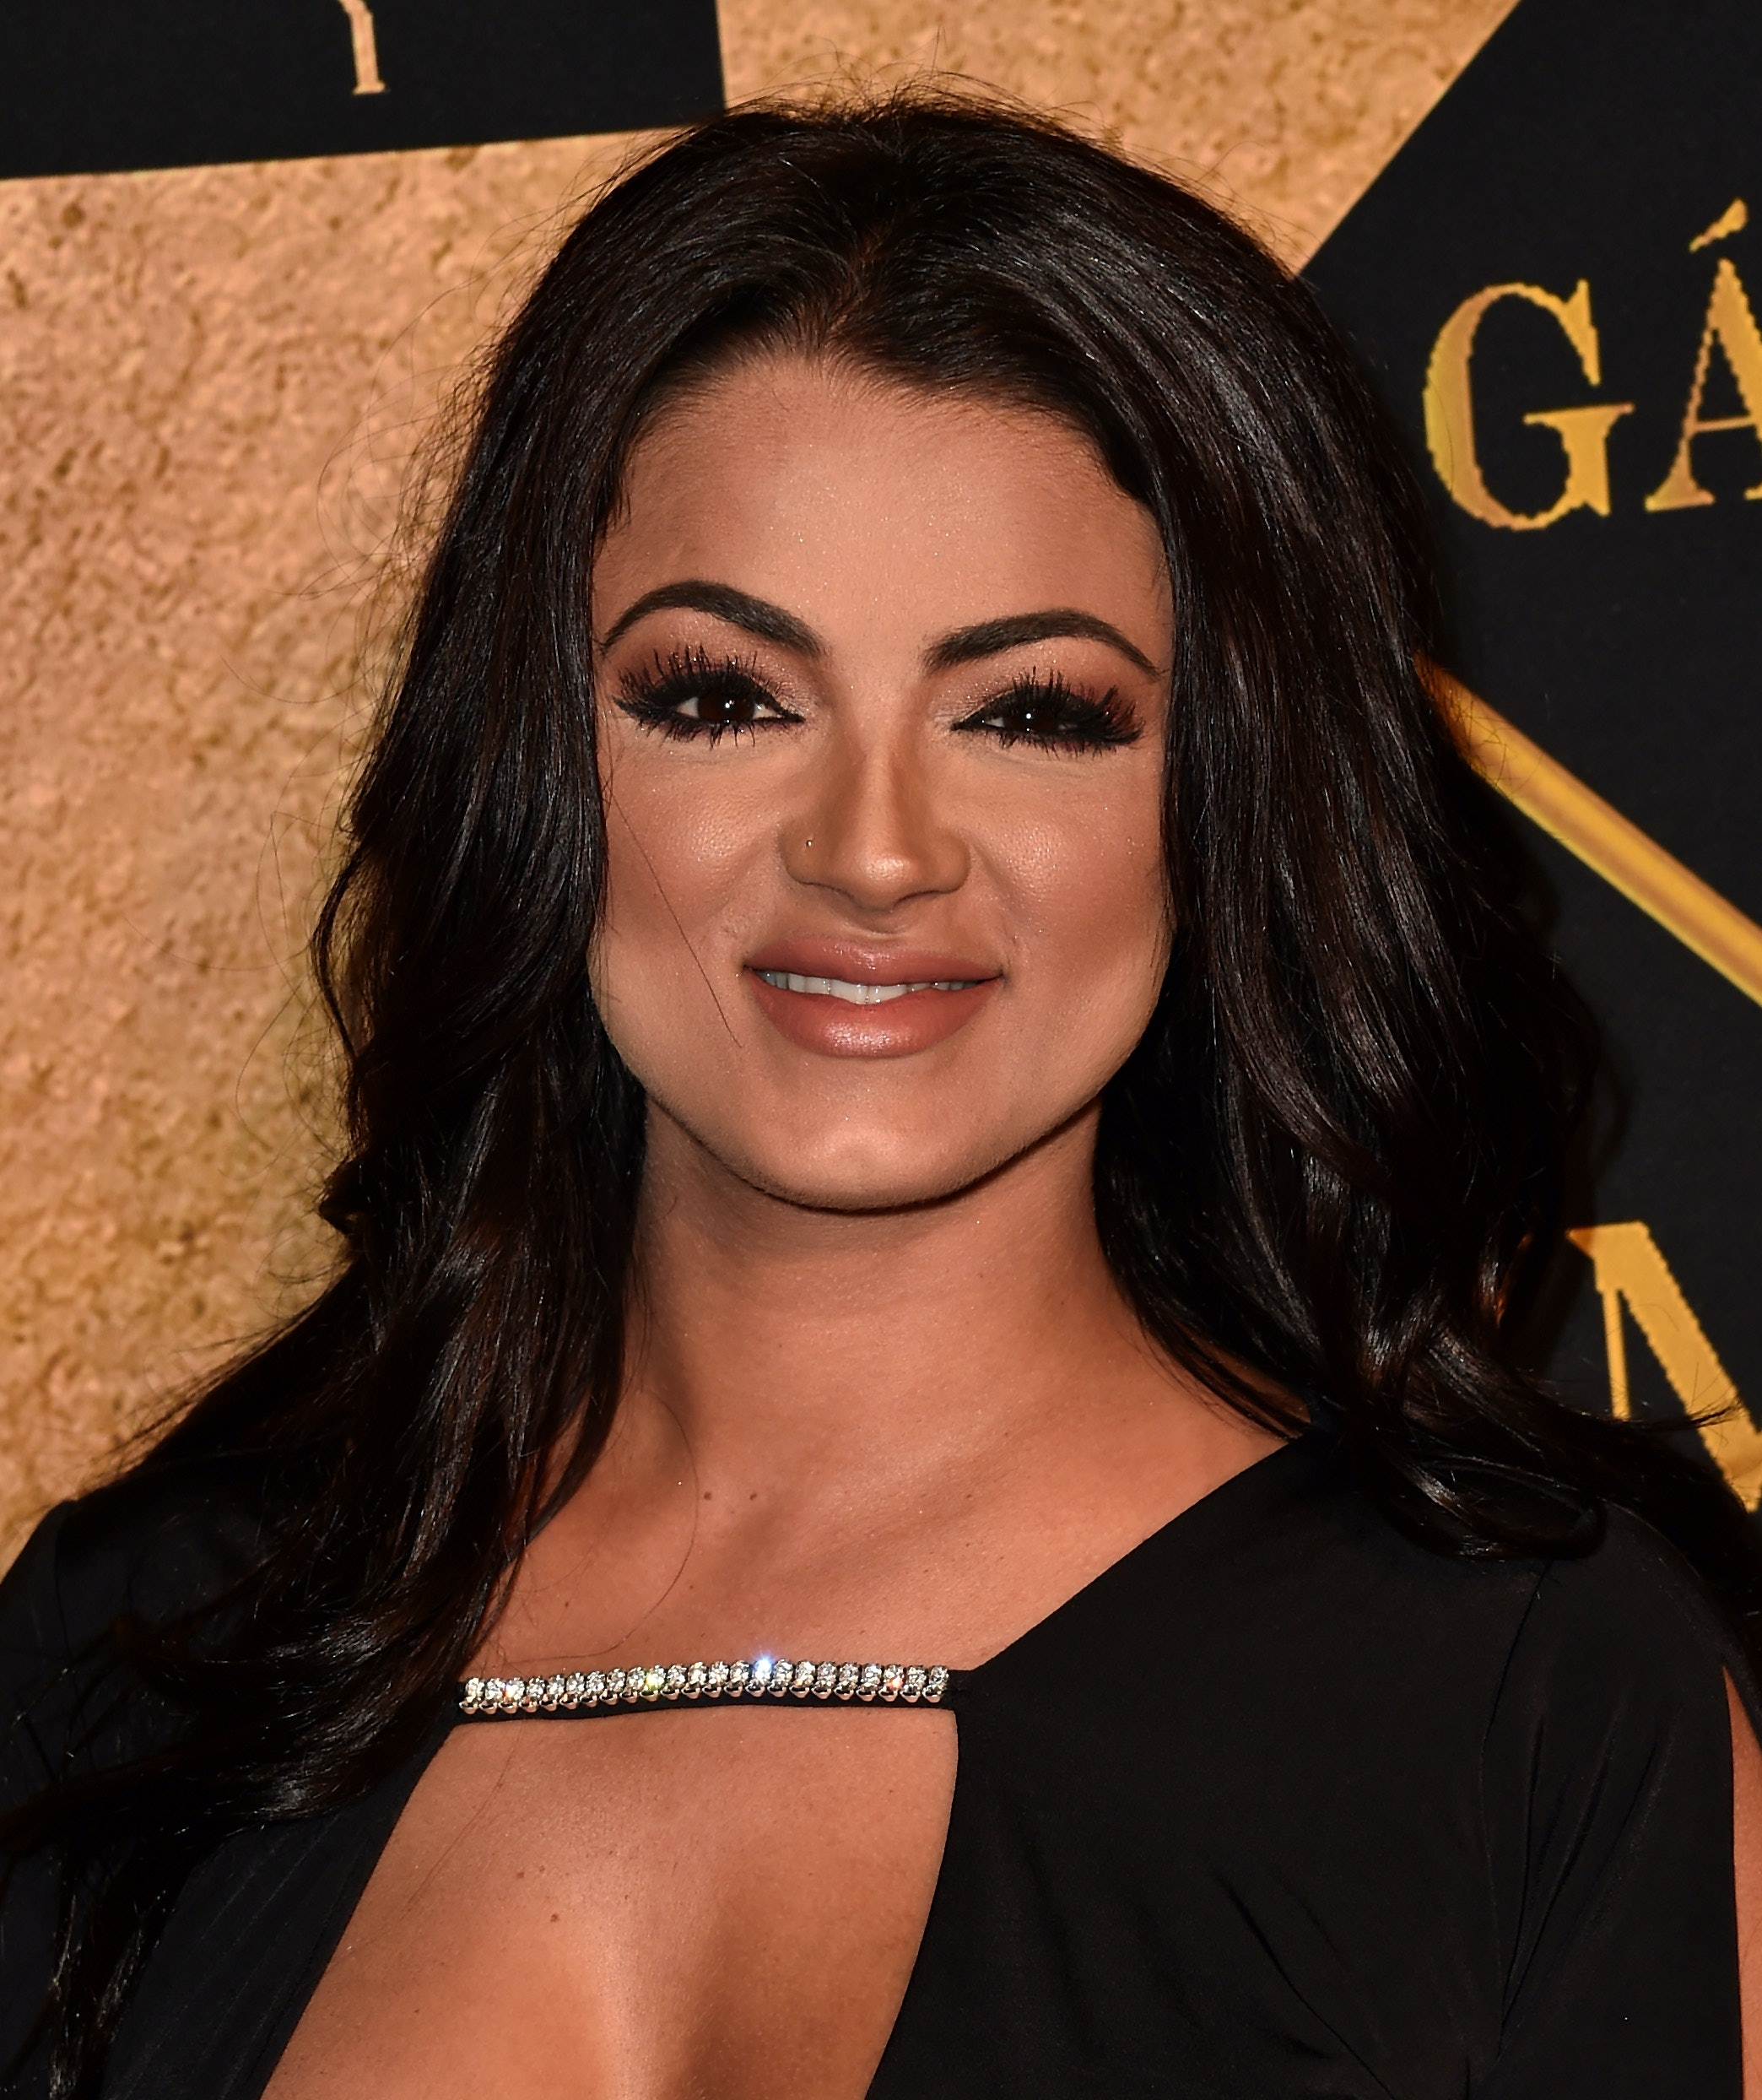 Who is gg from shahs dating